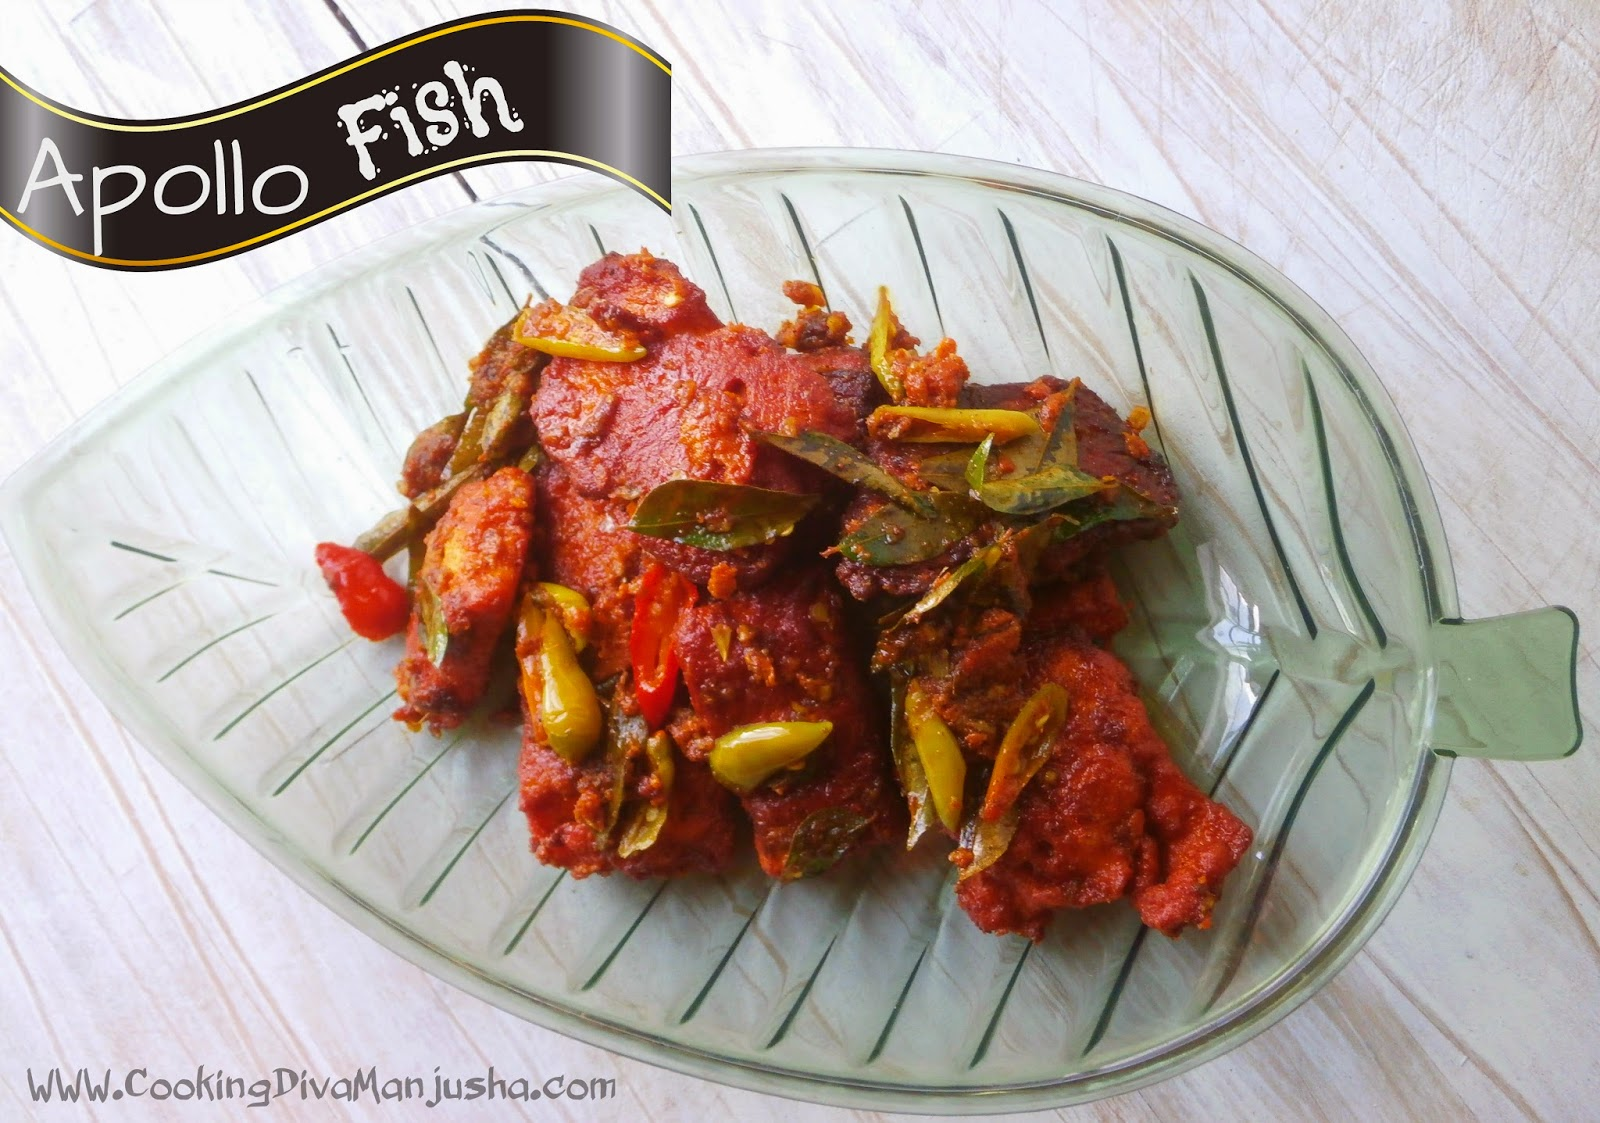 Apollo_fish_recipe